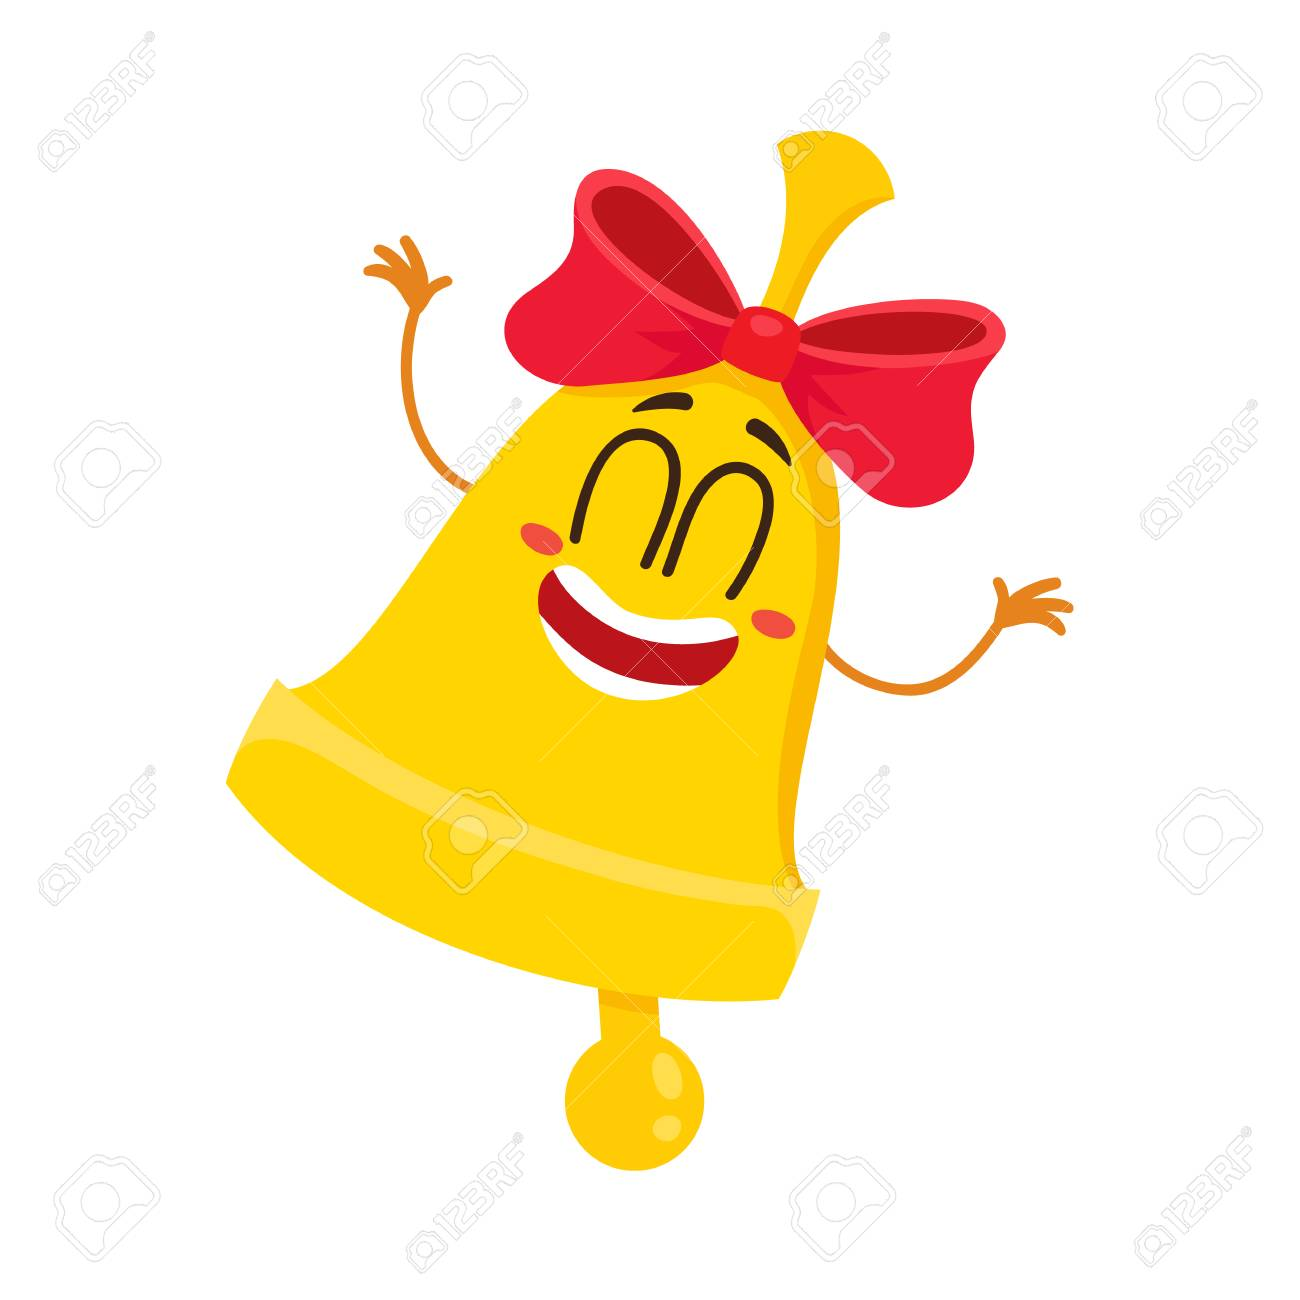 e52206698 Cute and funny golden school bell character with red ribbon and smiling  human face, cartoon